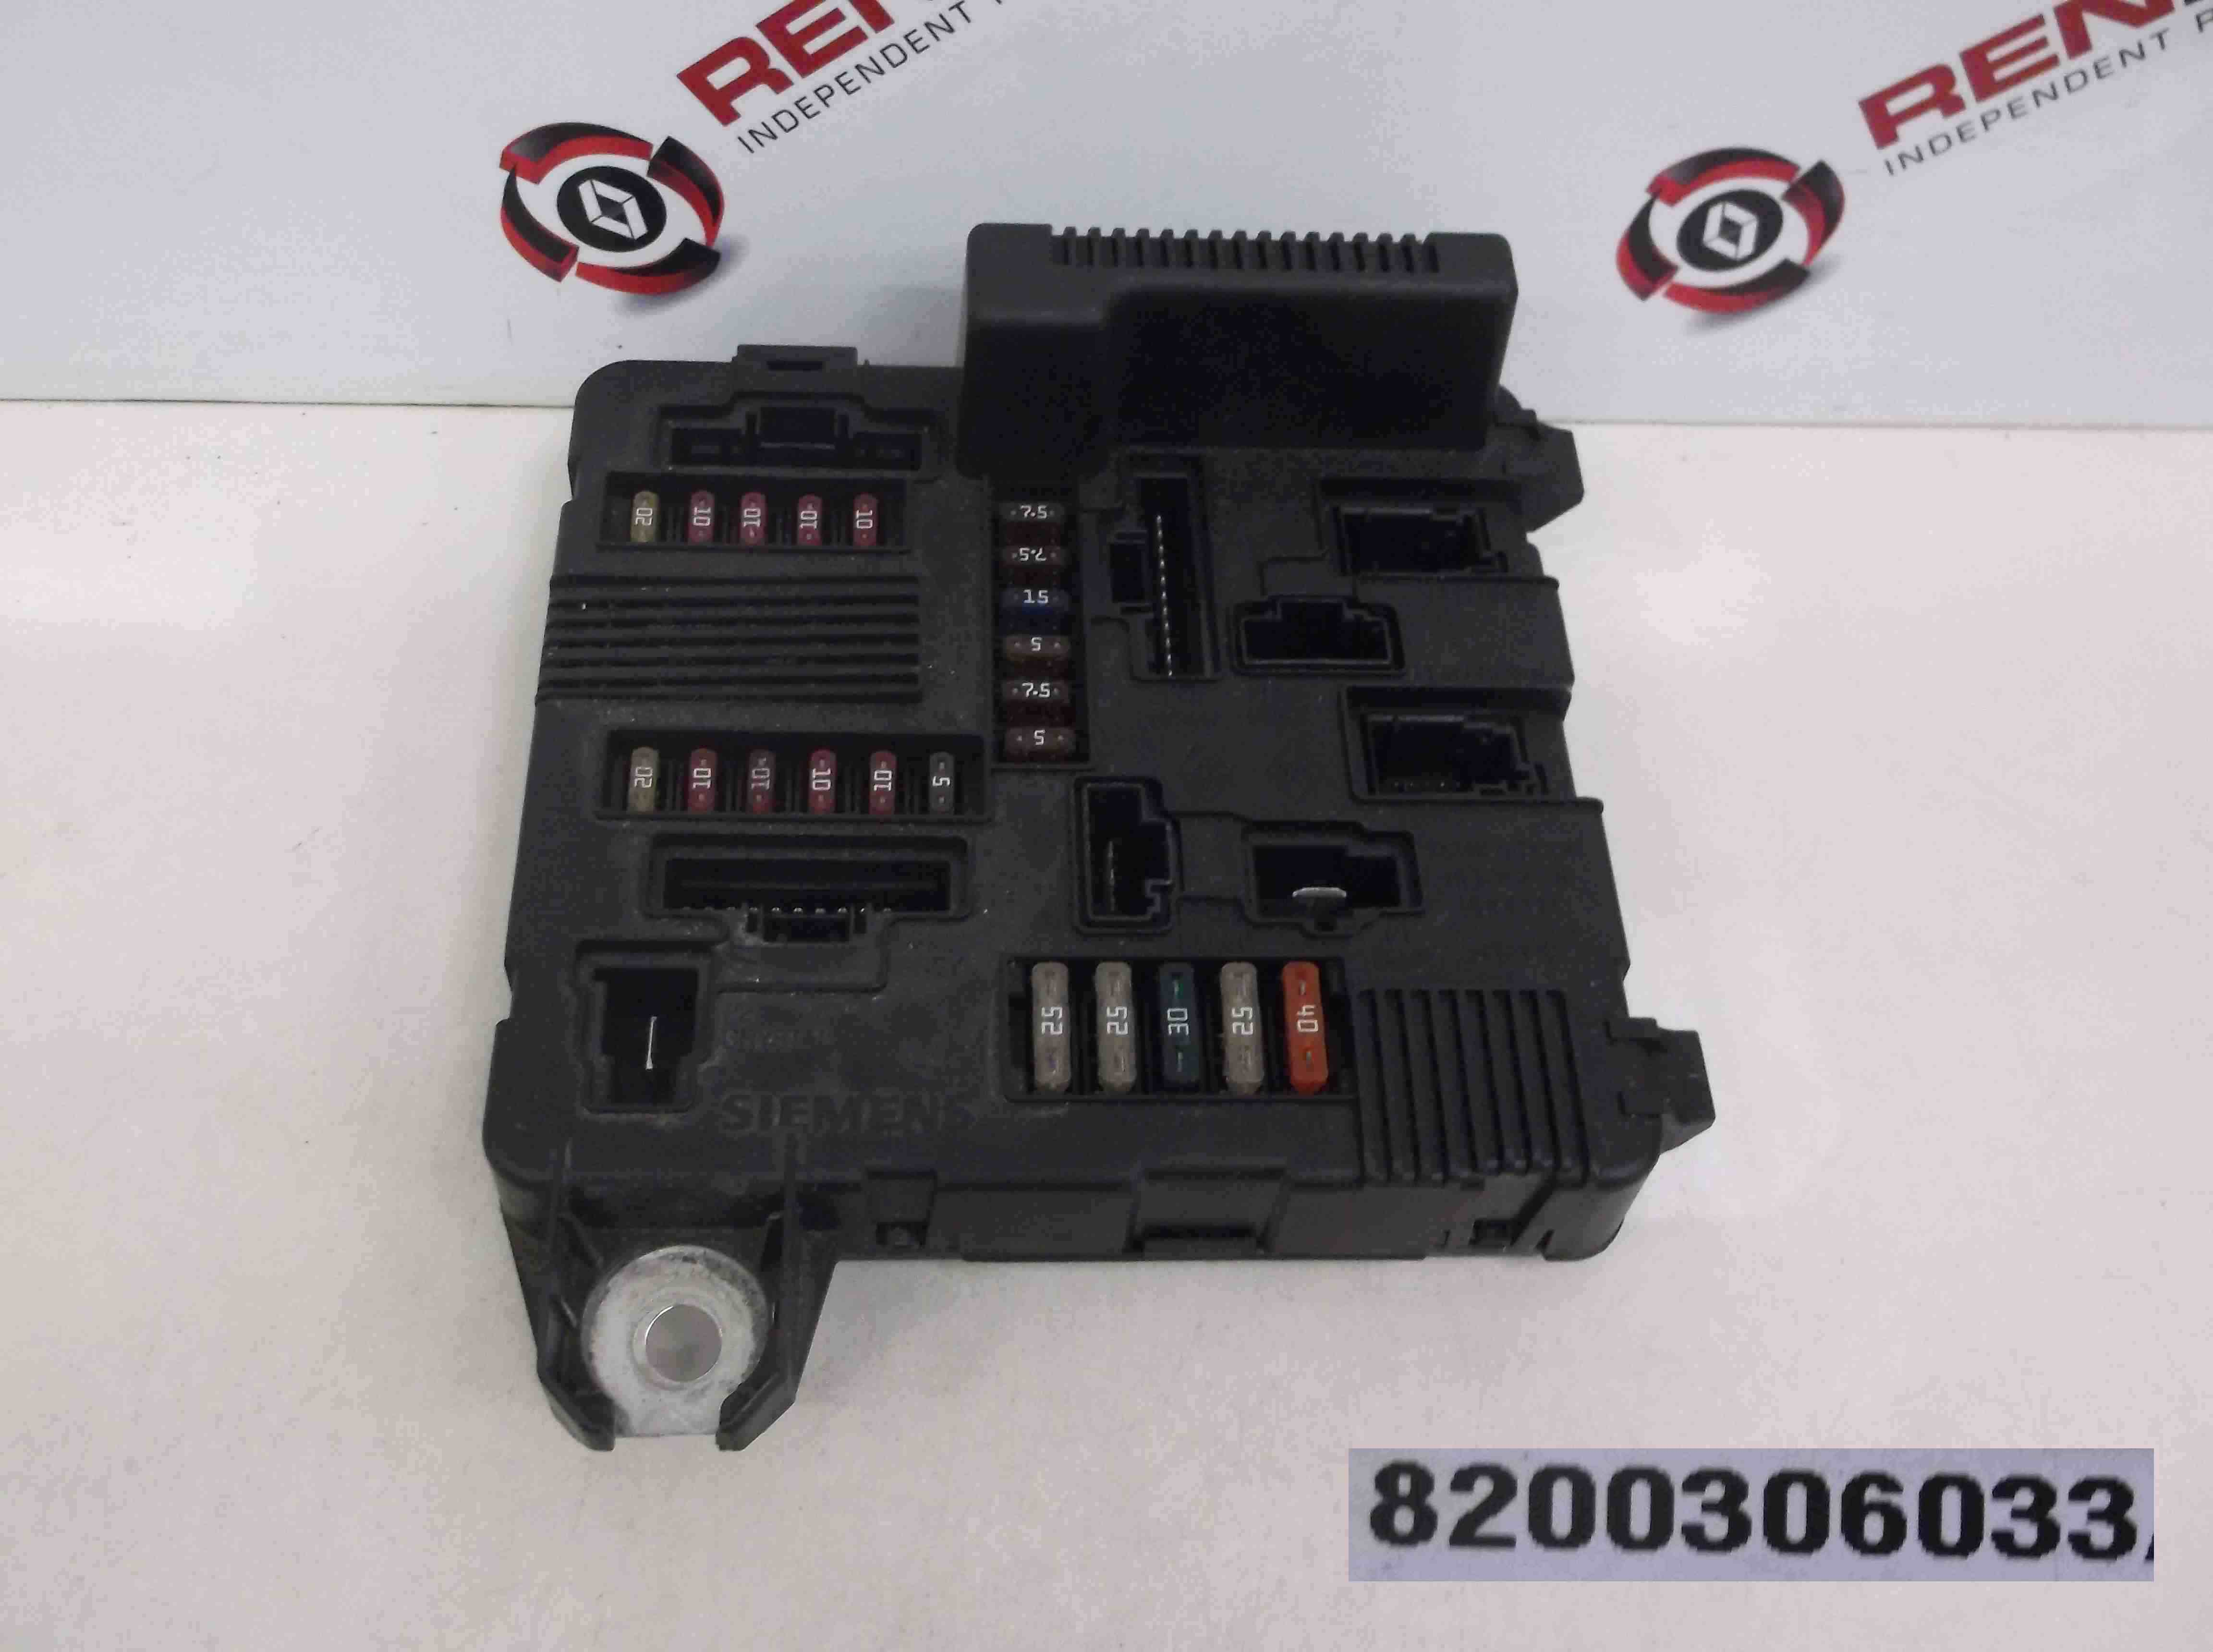 Renault Scenic 2 Fuse Box Wiring Library Megane Location 2002 2006 Engine Bay Upc 8200306033 8200306032 Store